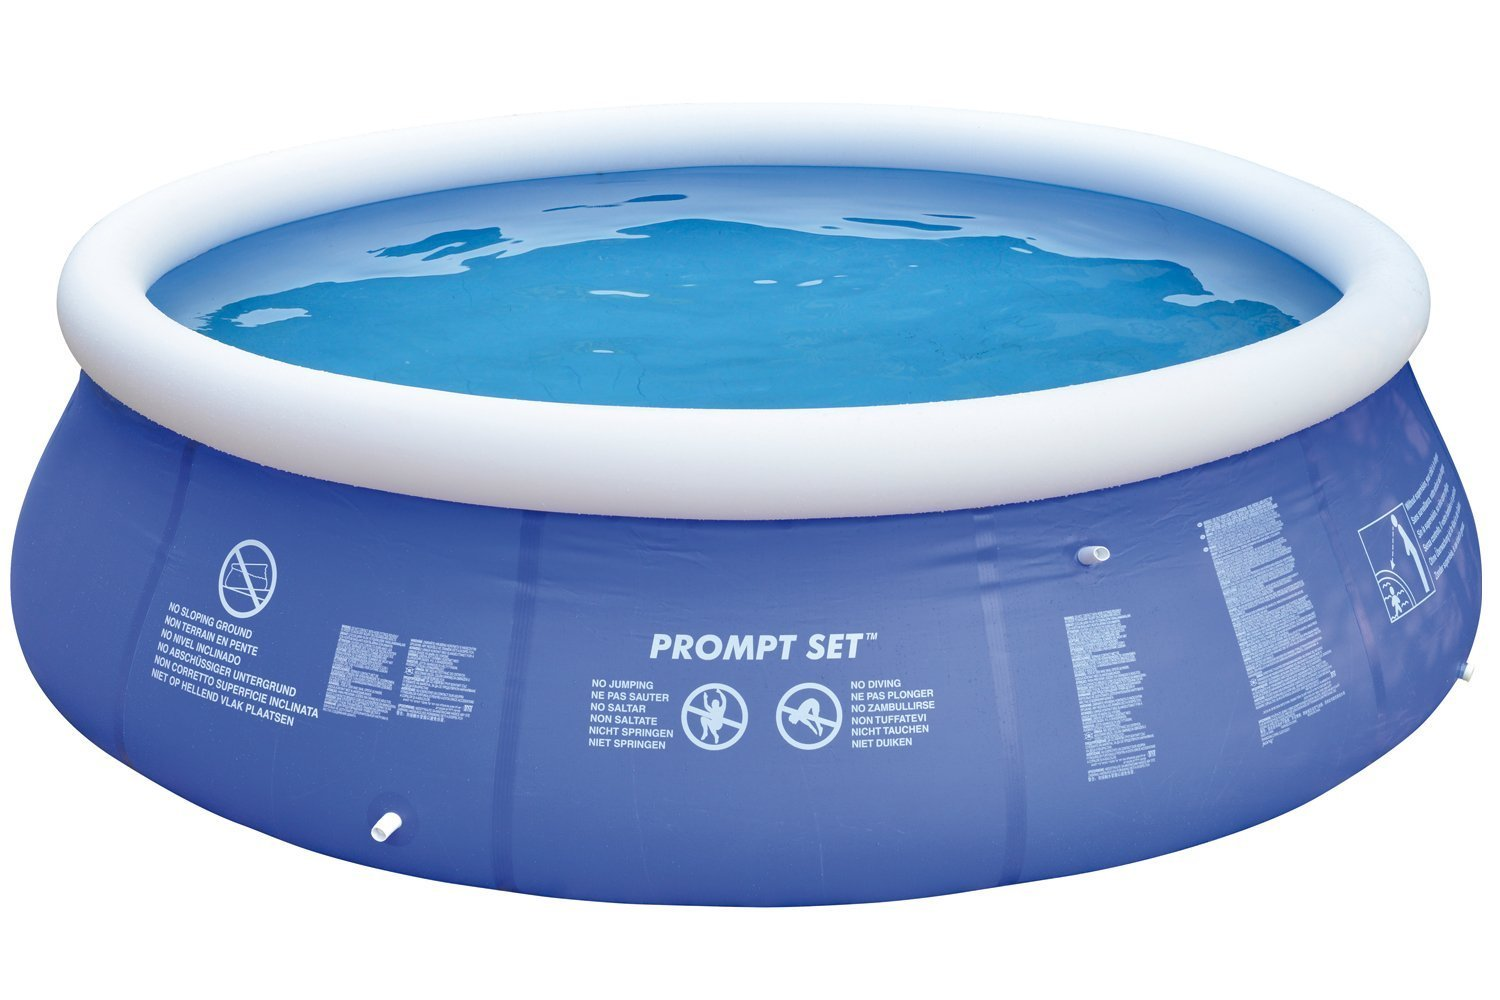 Jilong JL010208NG Prompt Set Pools Planschbecken 450x90cm Swimming Pool Schwimmbad Quick-up Wassersport